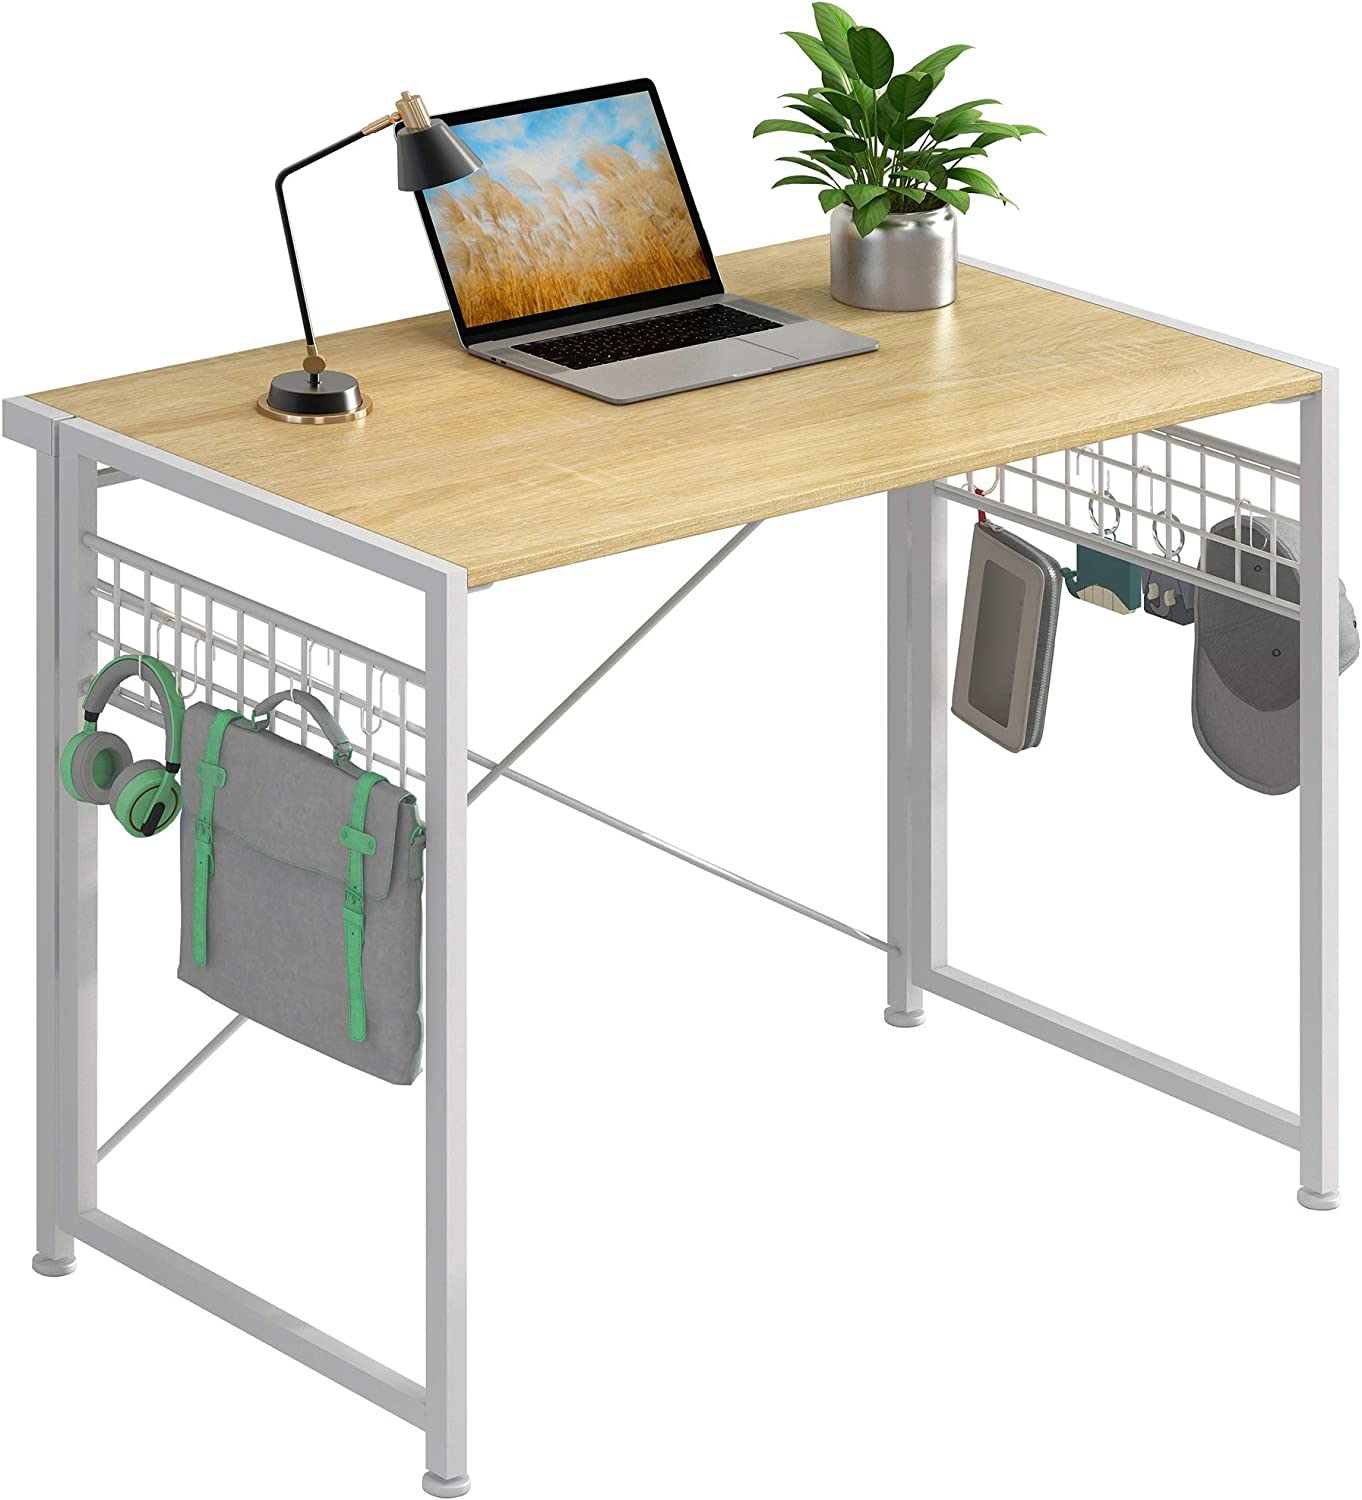 """JSB Folding Computer Desk with 8 Hooks, No-Assembly Small Writing Desk Modern Work Table Laptop Desk for Home Office (35.43"""" x 17.7"""" x 29.53"""", White & Hook)"""